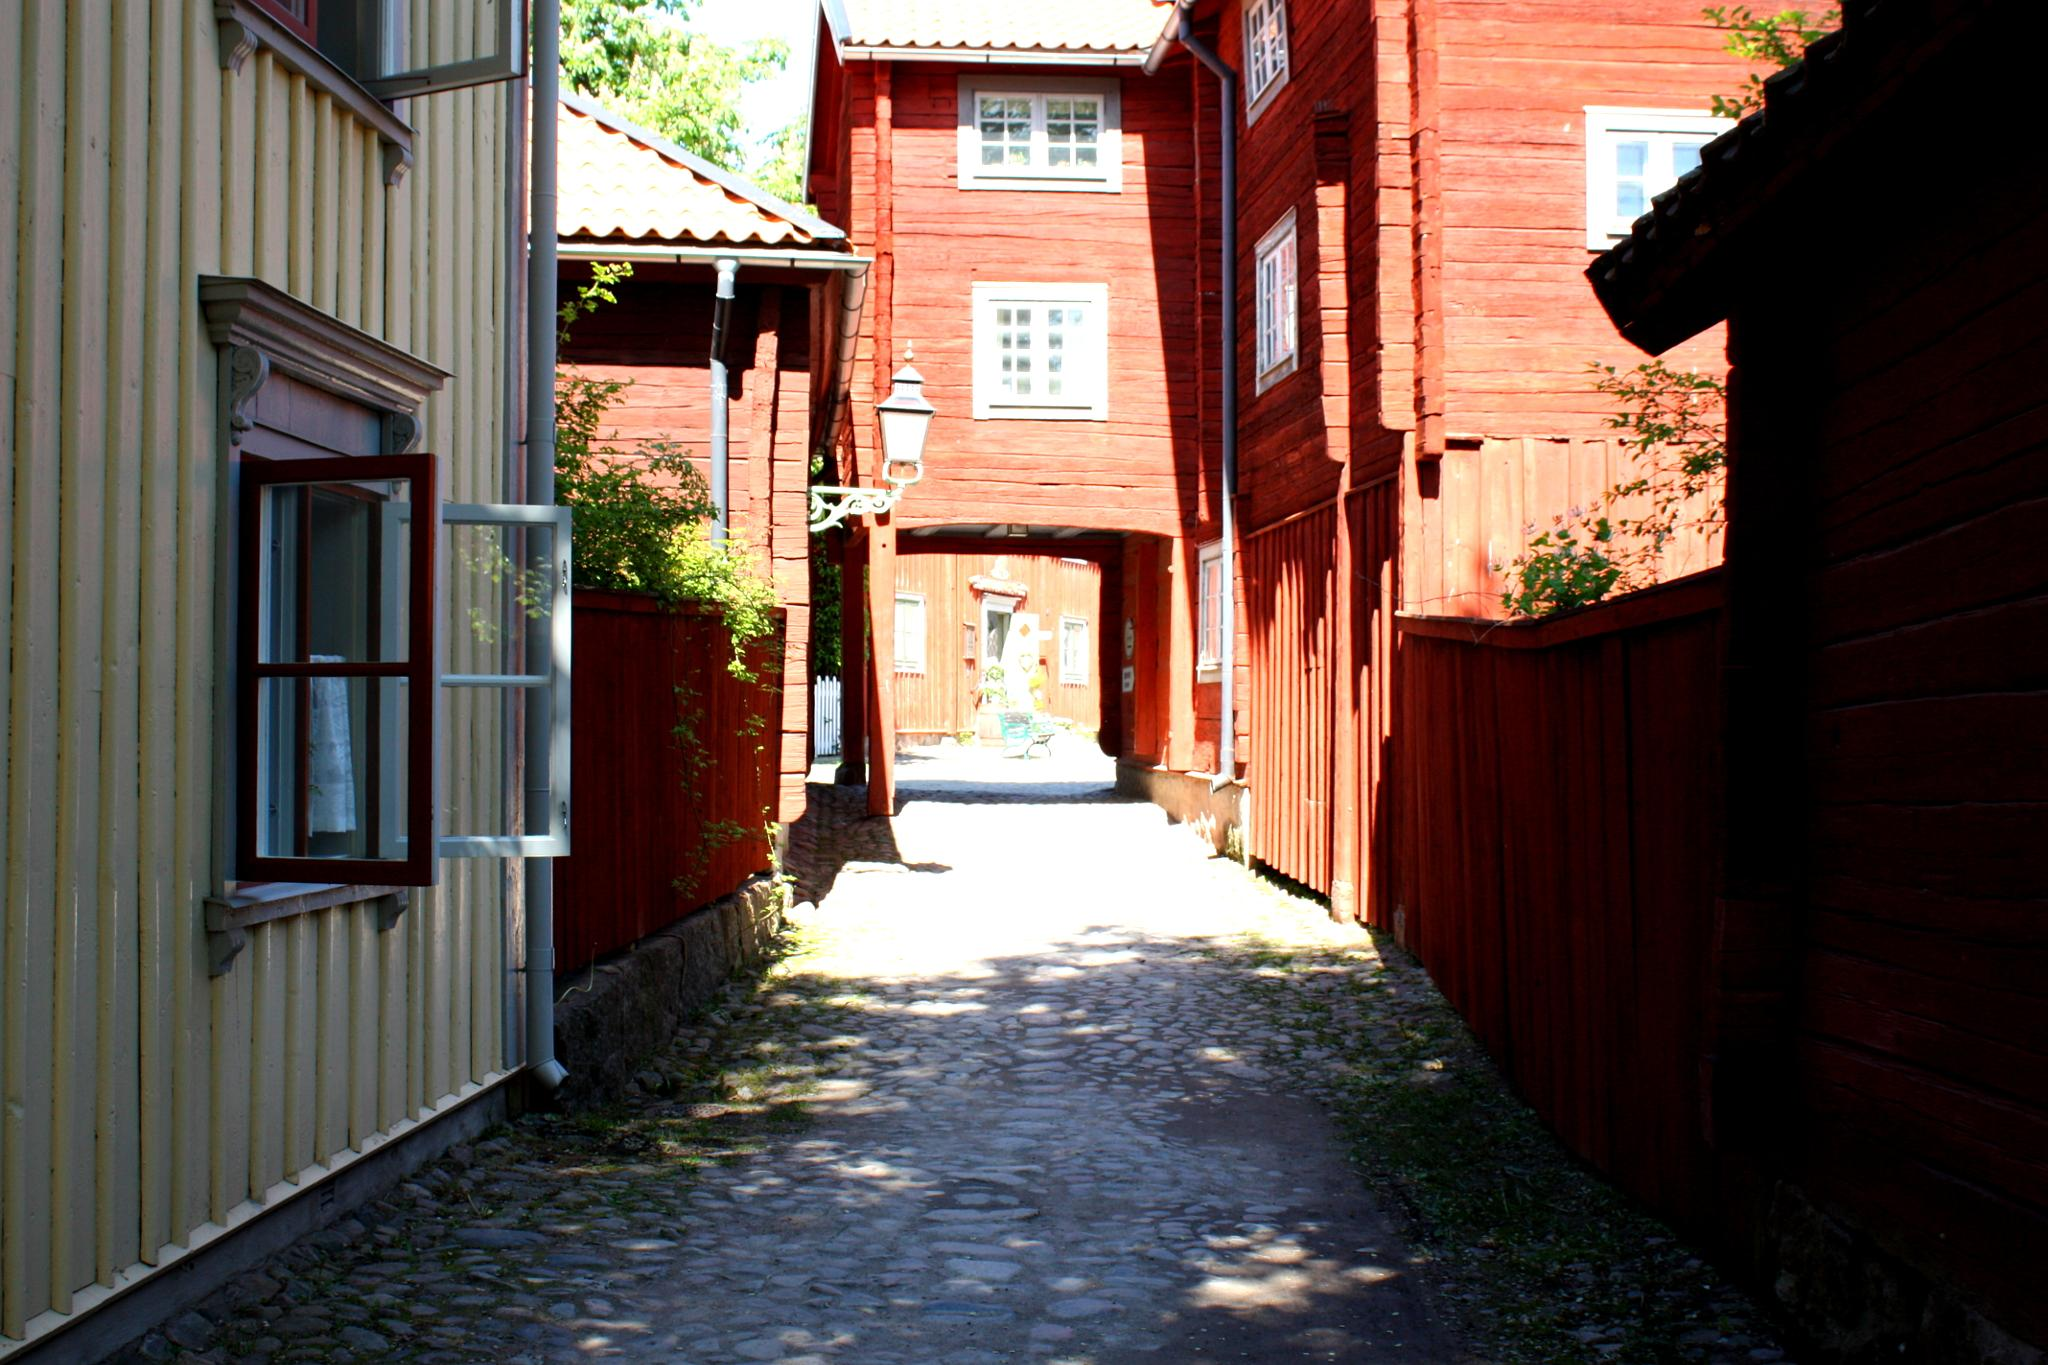 Gamla Linköping by bengt Persson